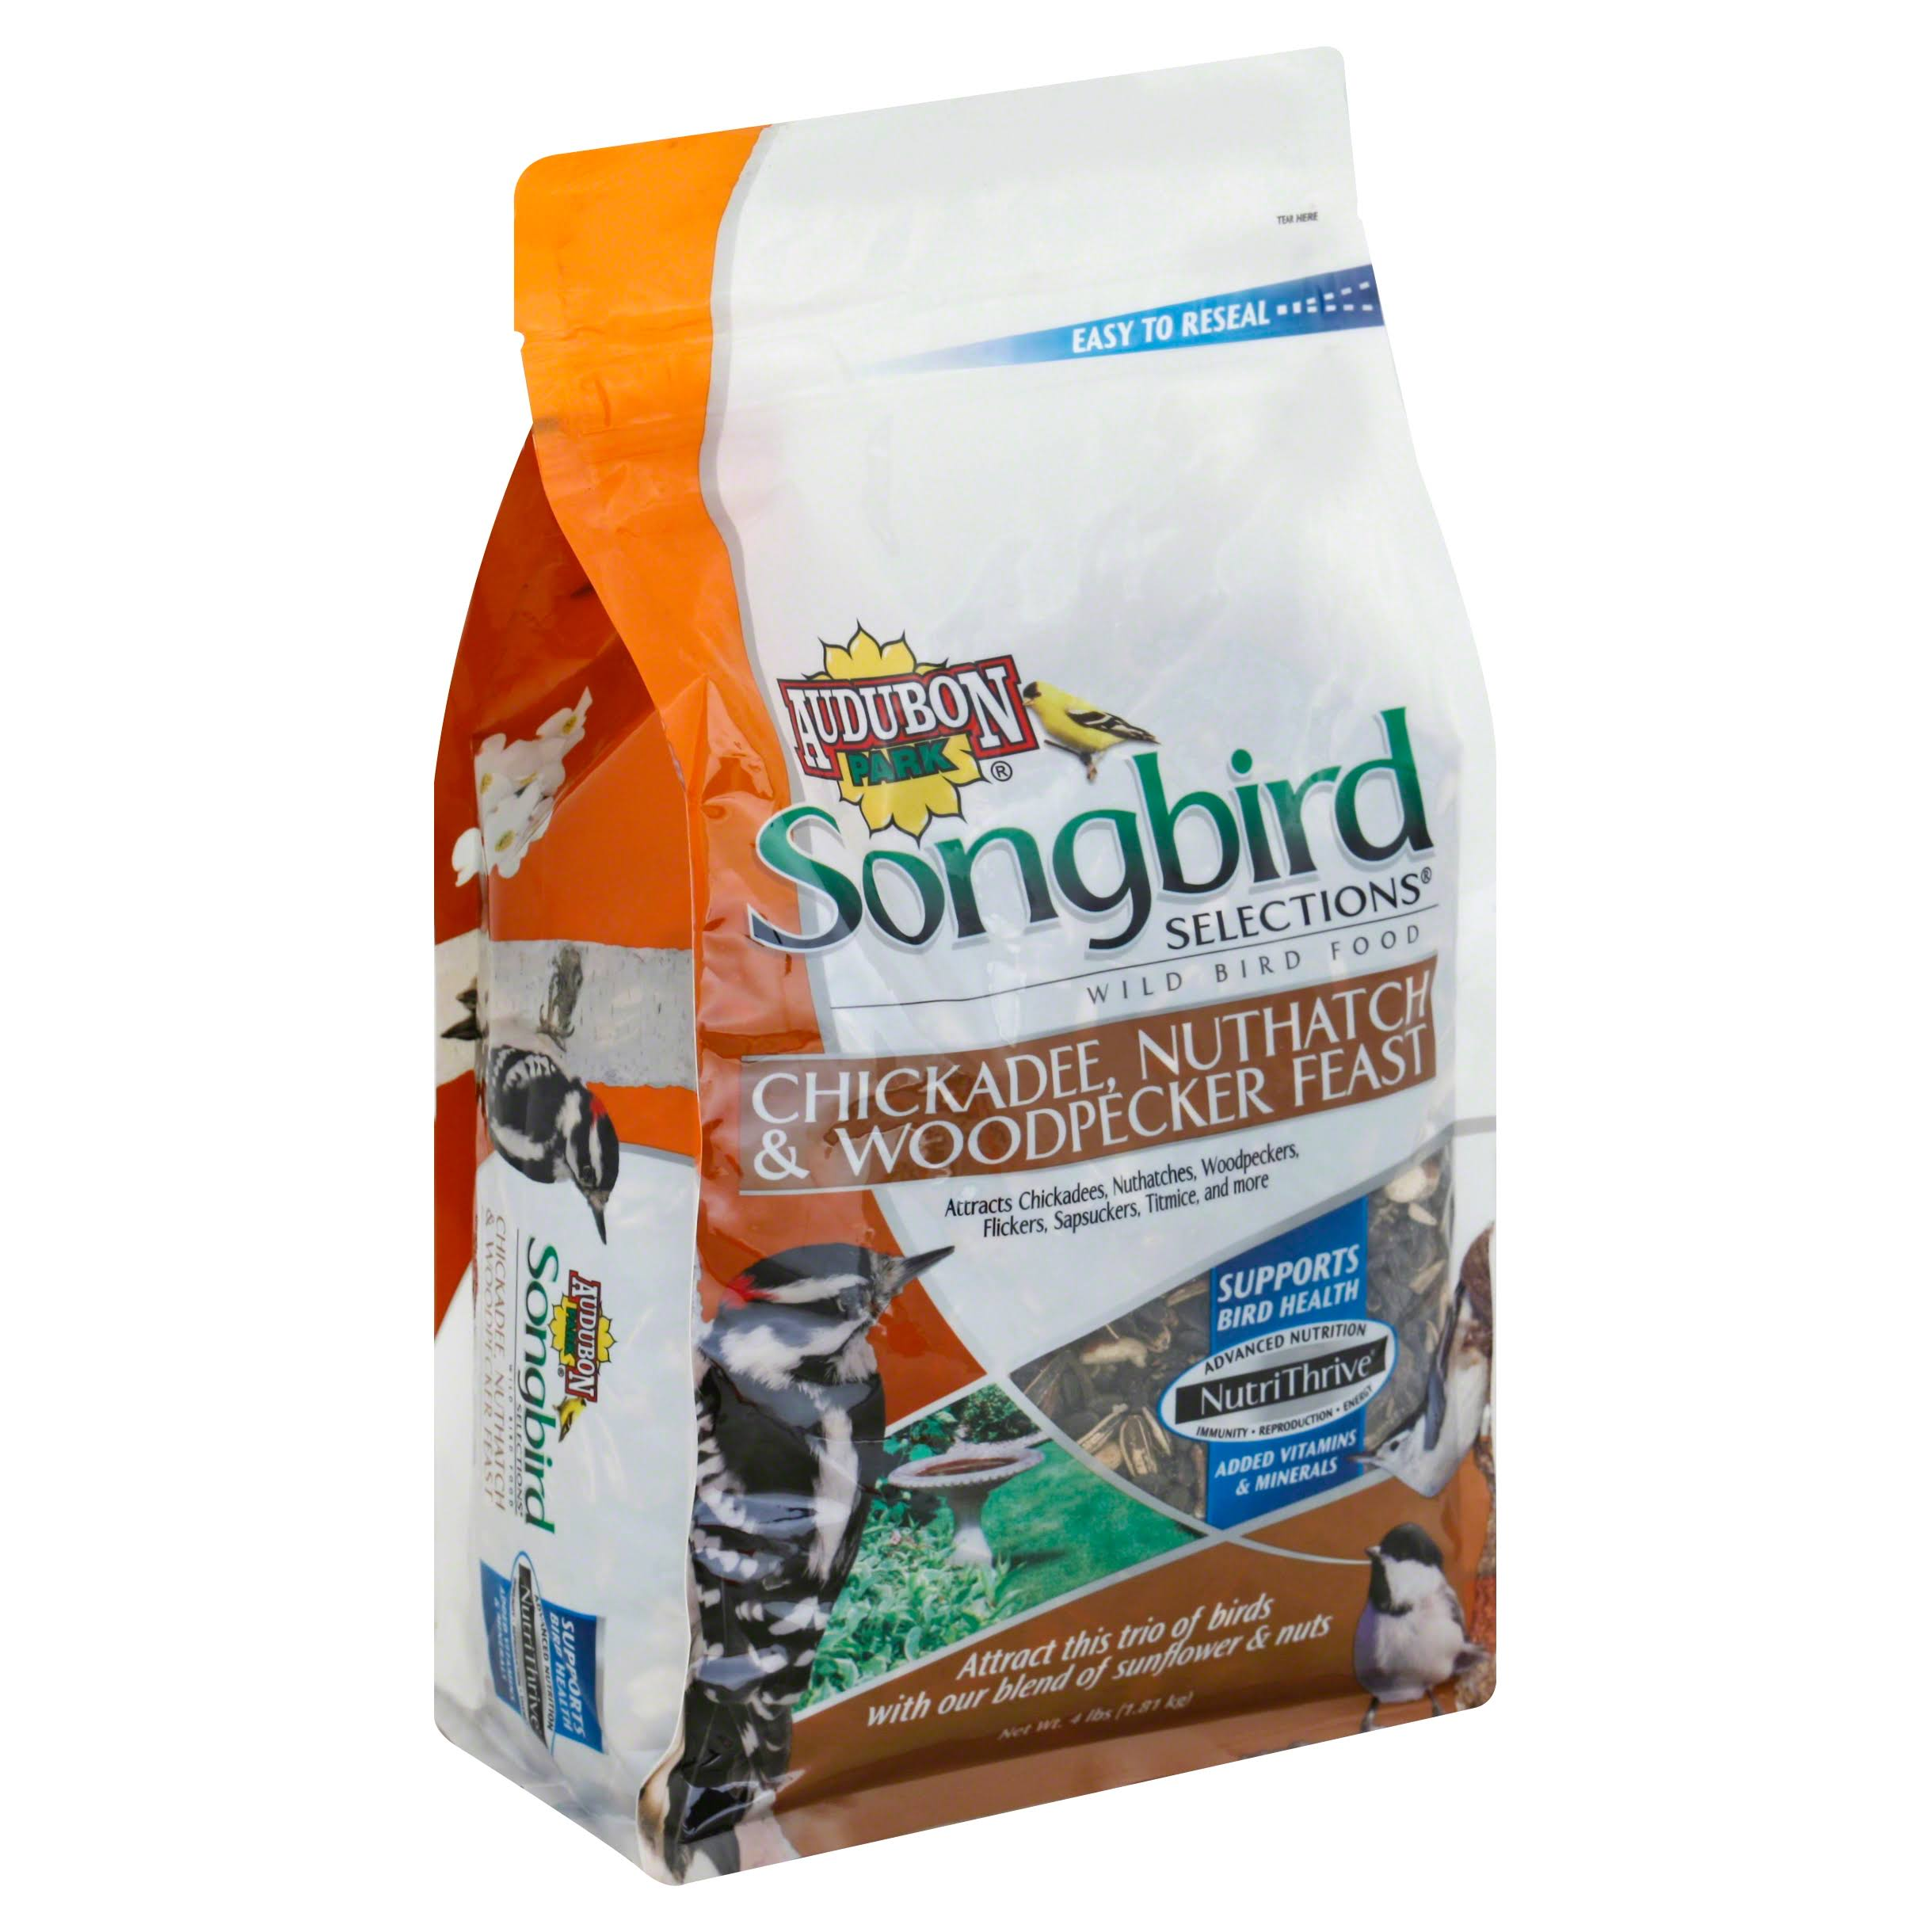 Audubon Park Songbird Selections Wild Bird Food, Chickadee, Nuthatch & Woodpecker Feast - 4 lbs (1.81 kg)